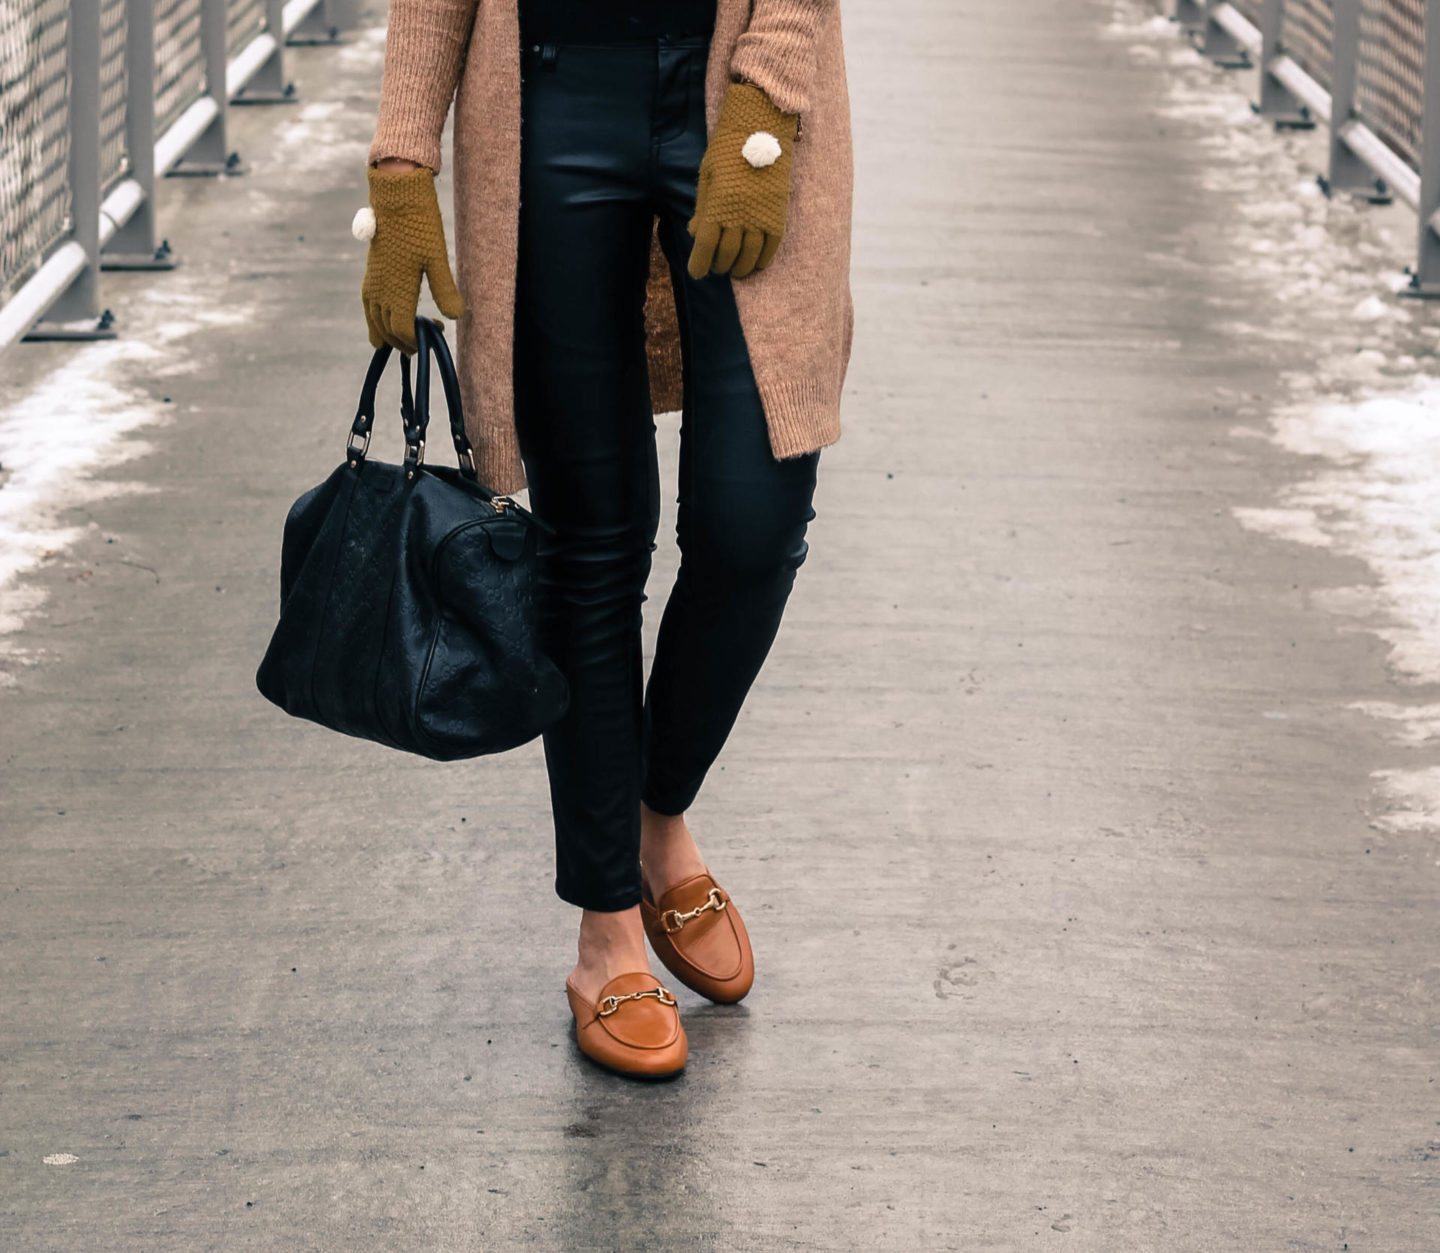 Vionic Mules For Spring